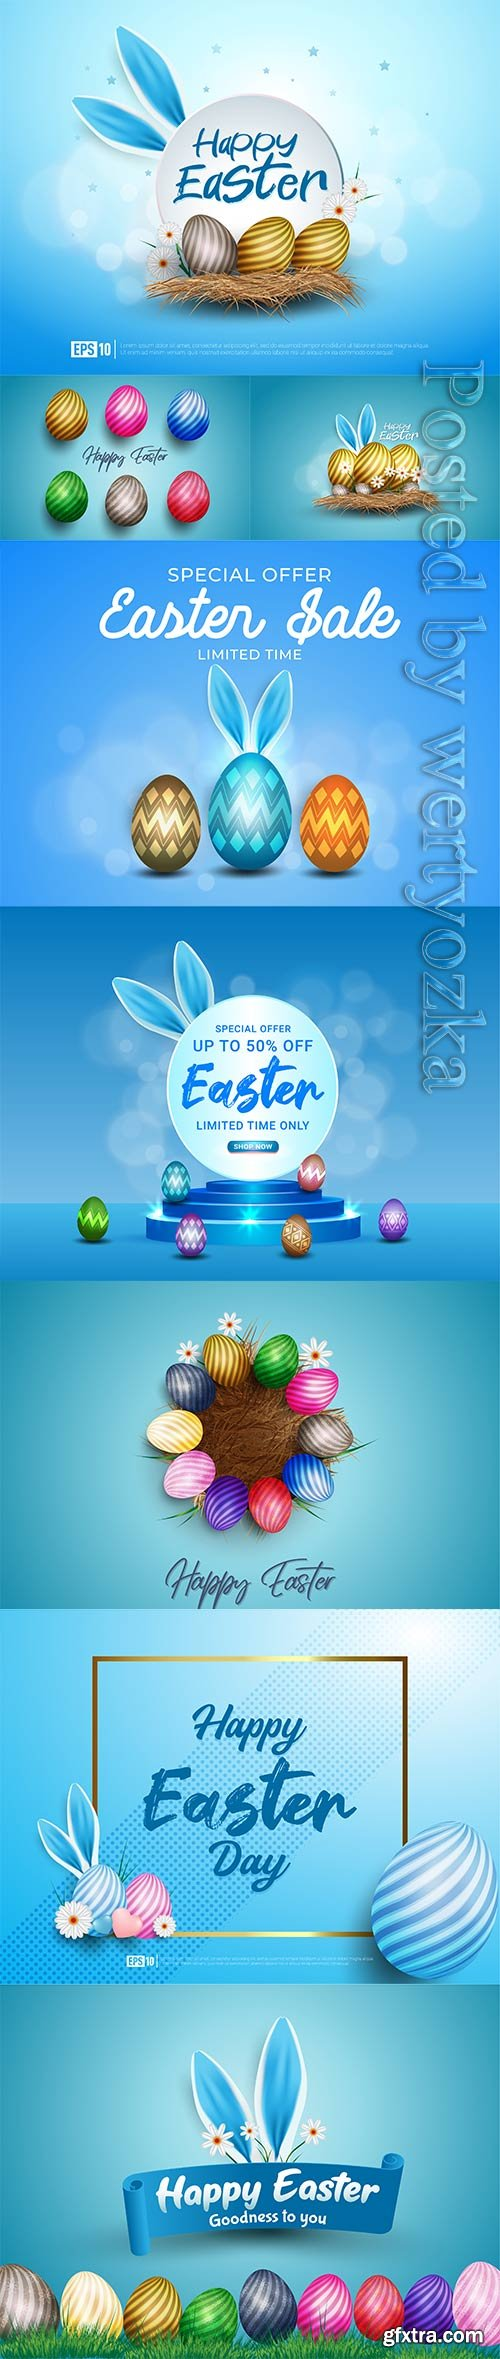 Happy easter background realistic decorated bunny ears and easter eggs